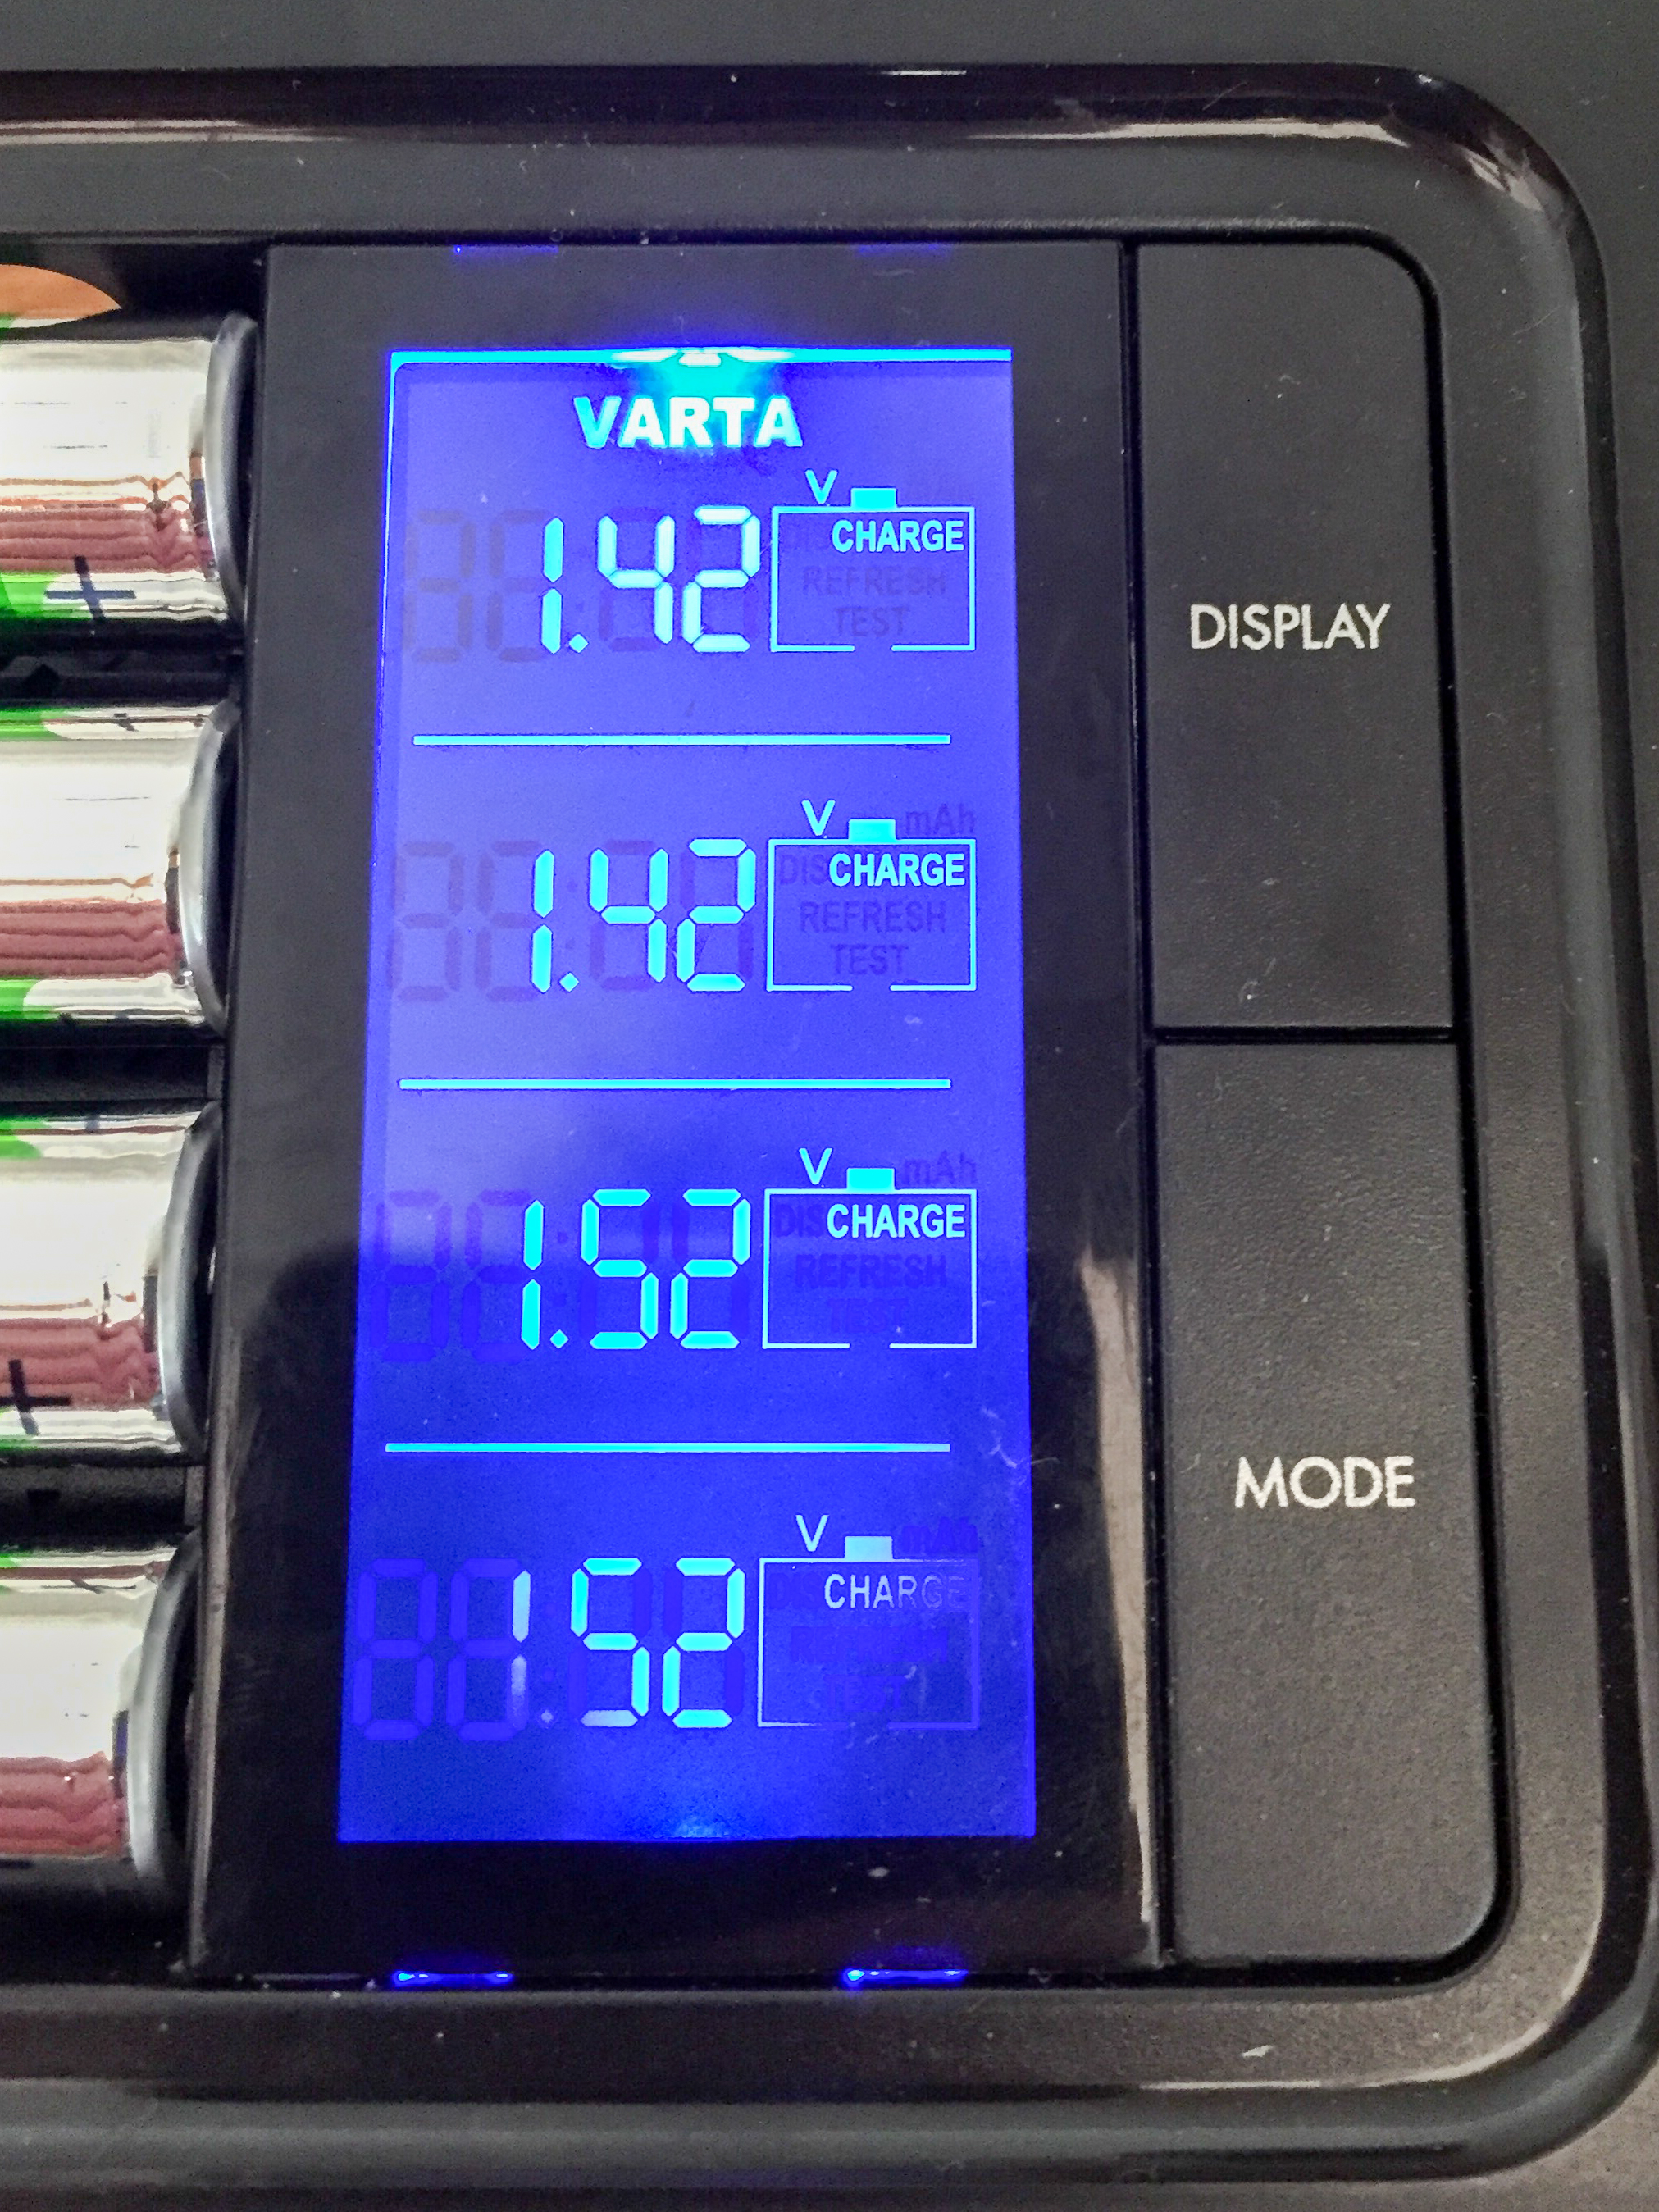 Varta 57285 Charger LCD Voltage View